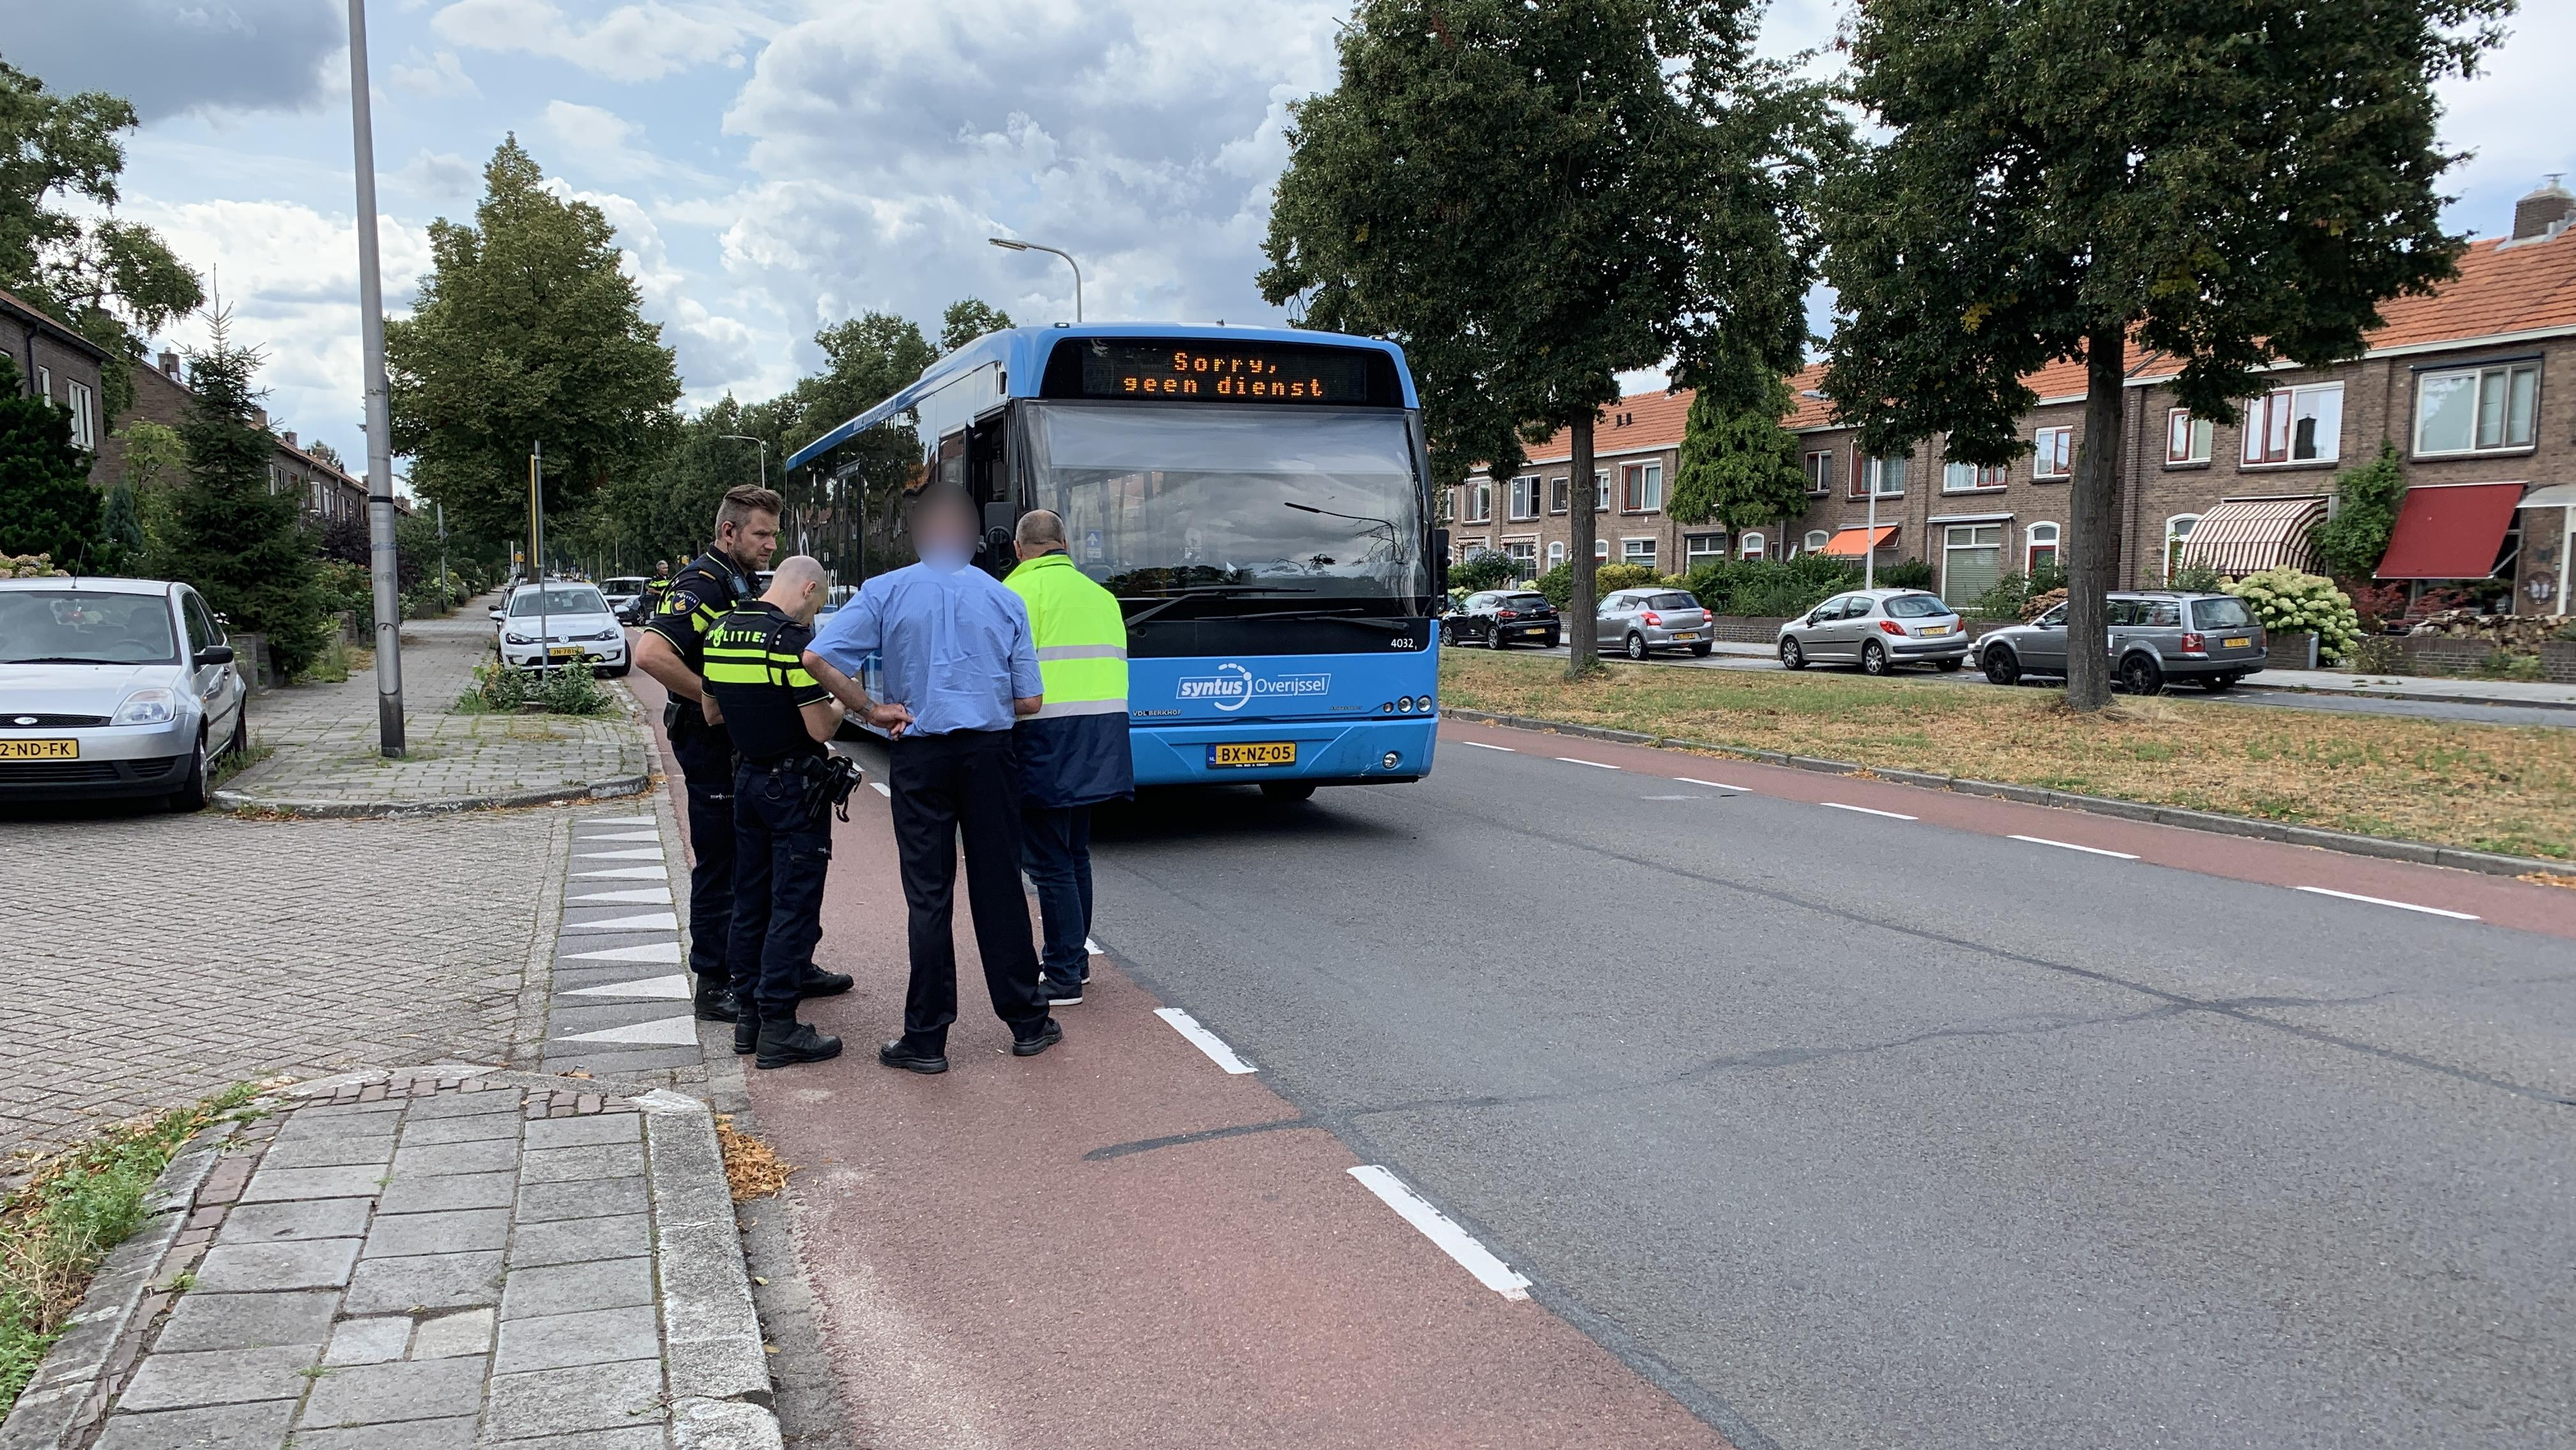 Kind gewond door ongeluk met bus in Deventer.